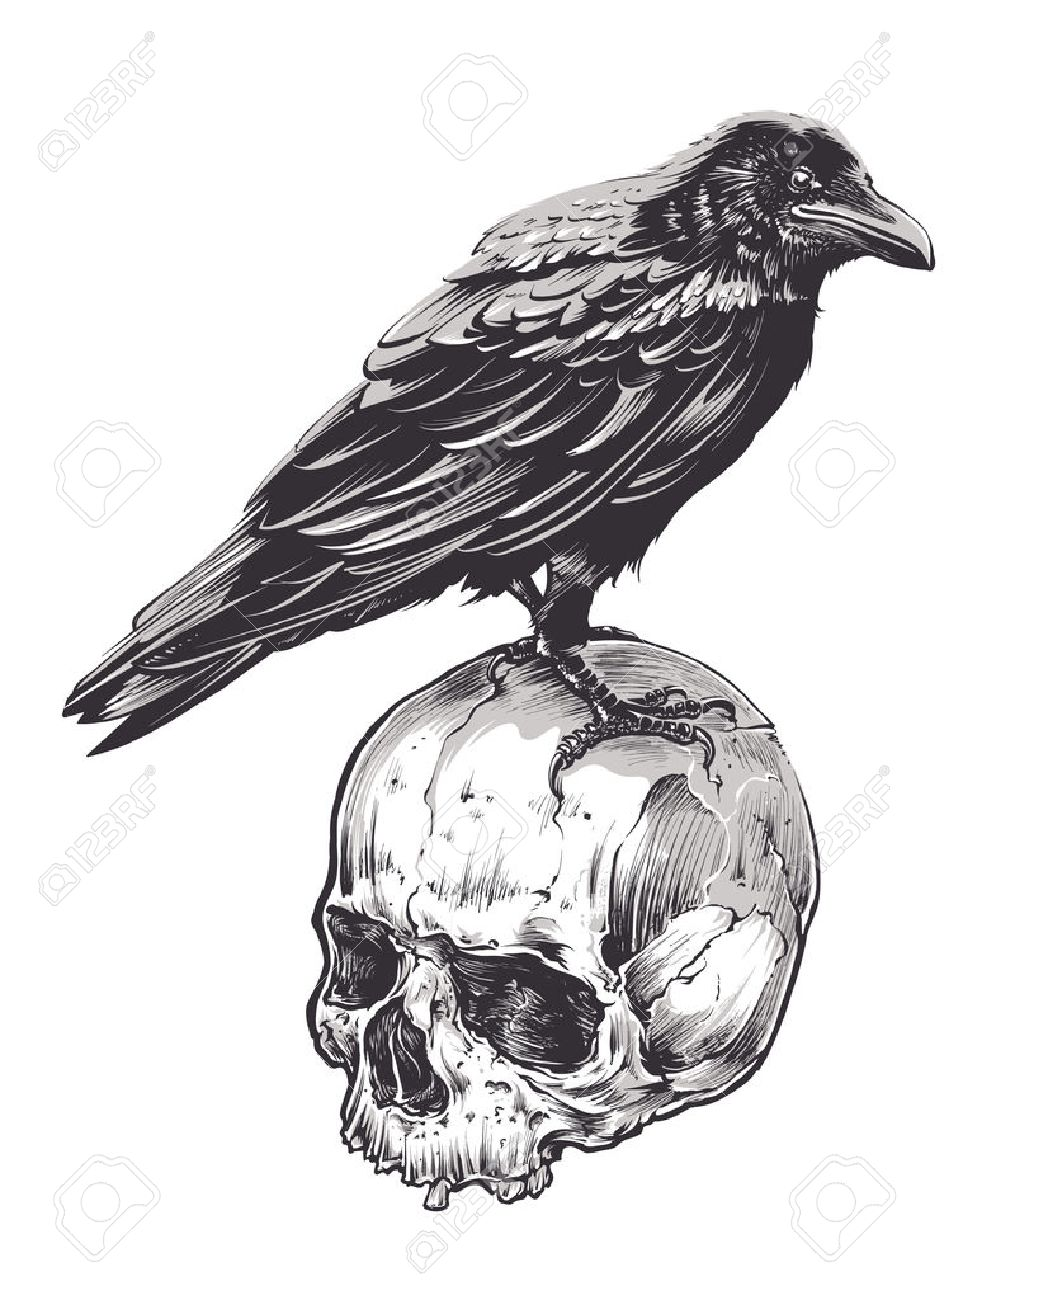 Crow on skull isolated on white. Hand drawn vector art. Sketch vector illustration. - 58619930